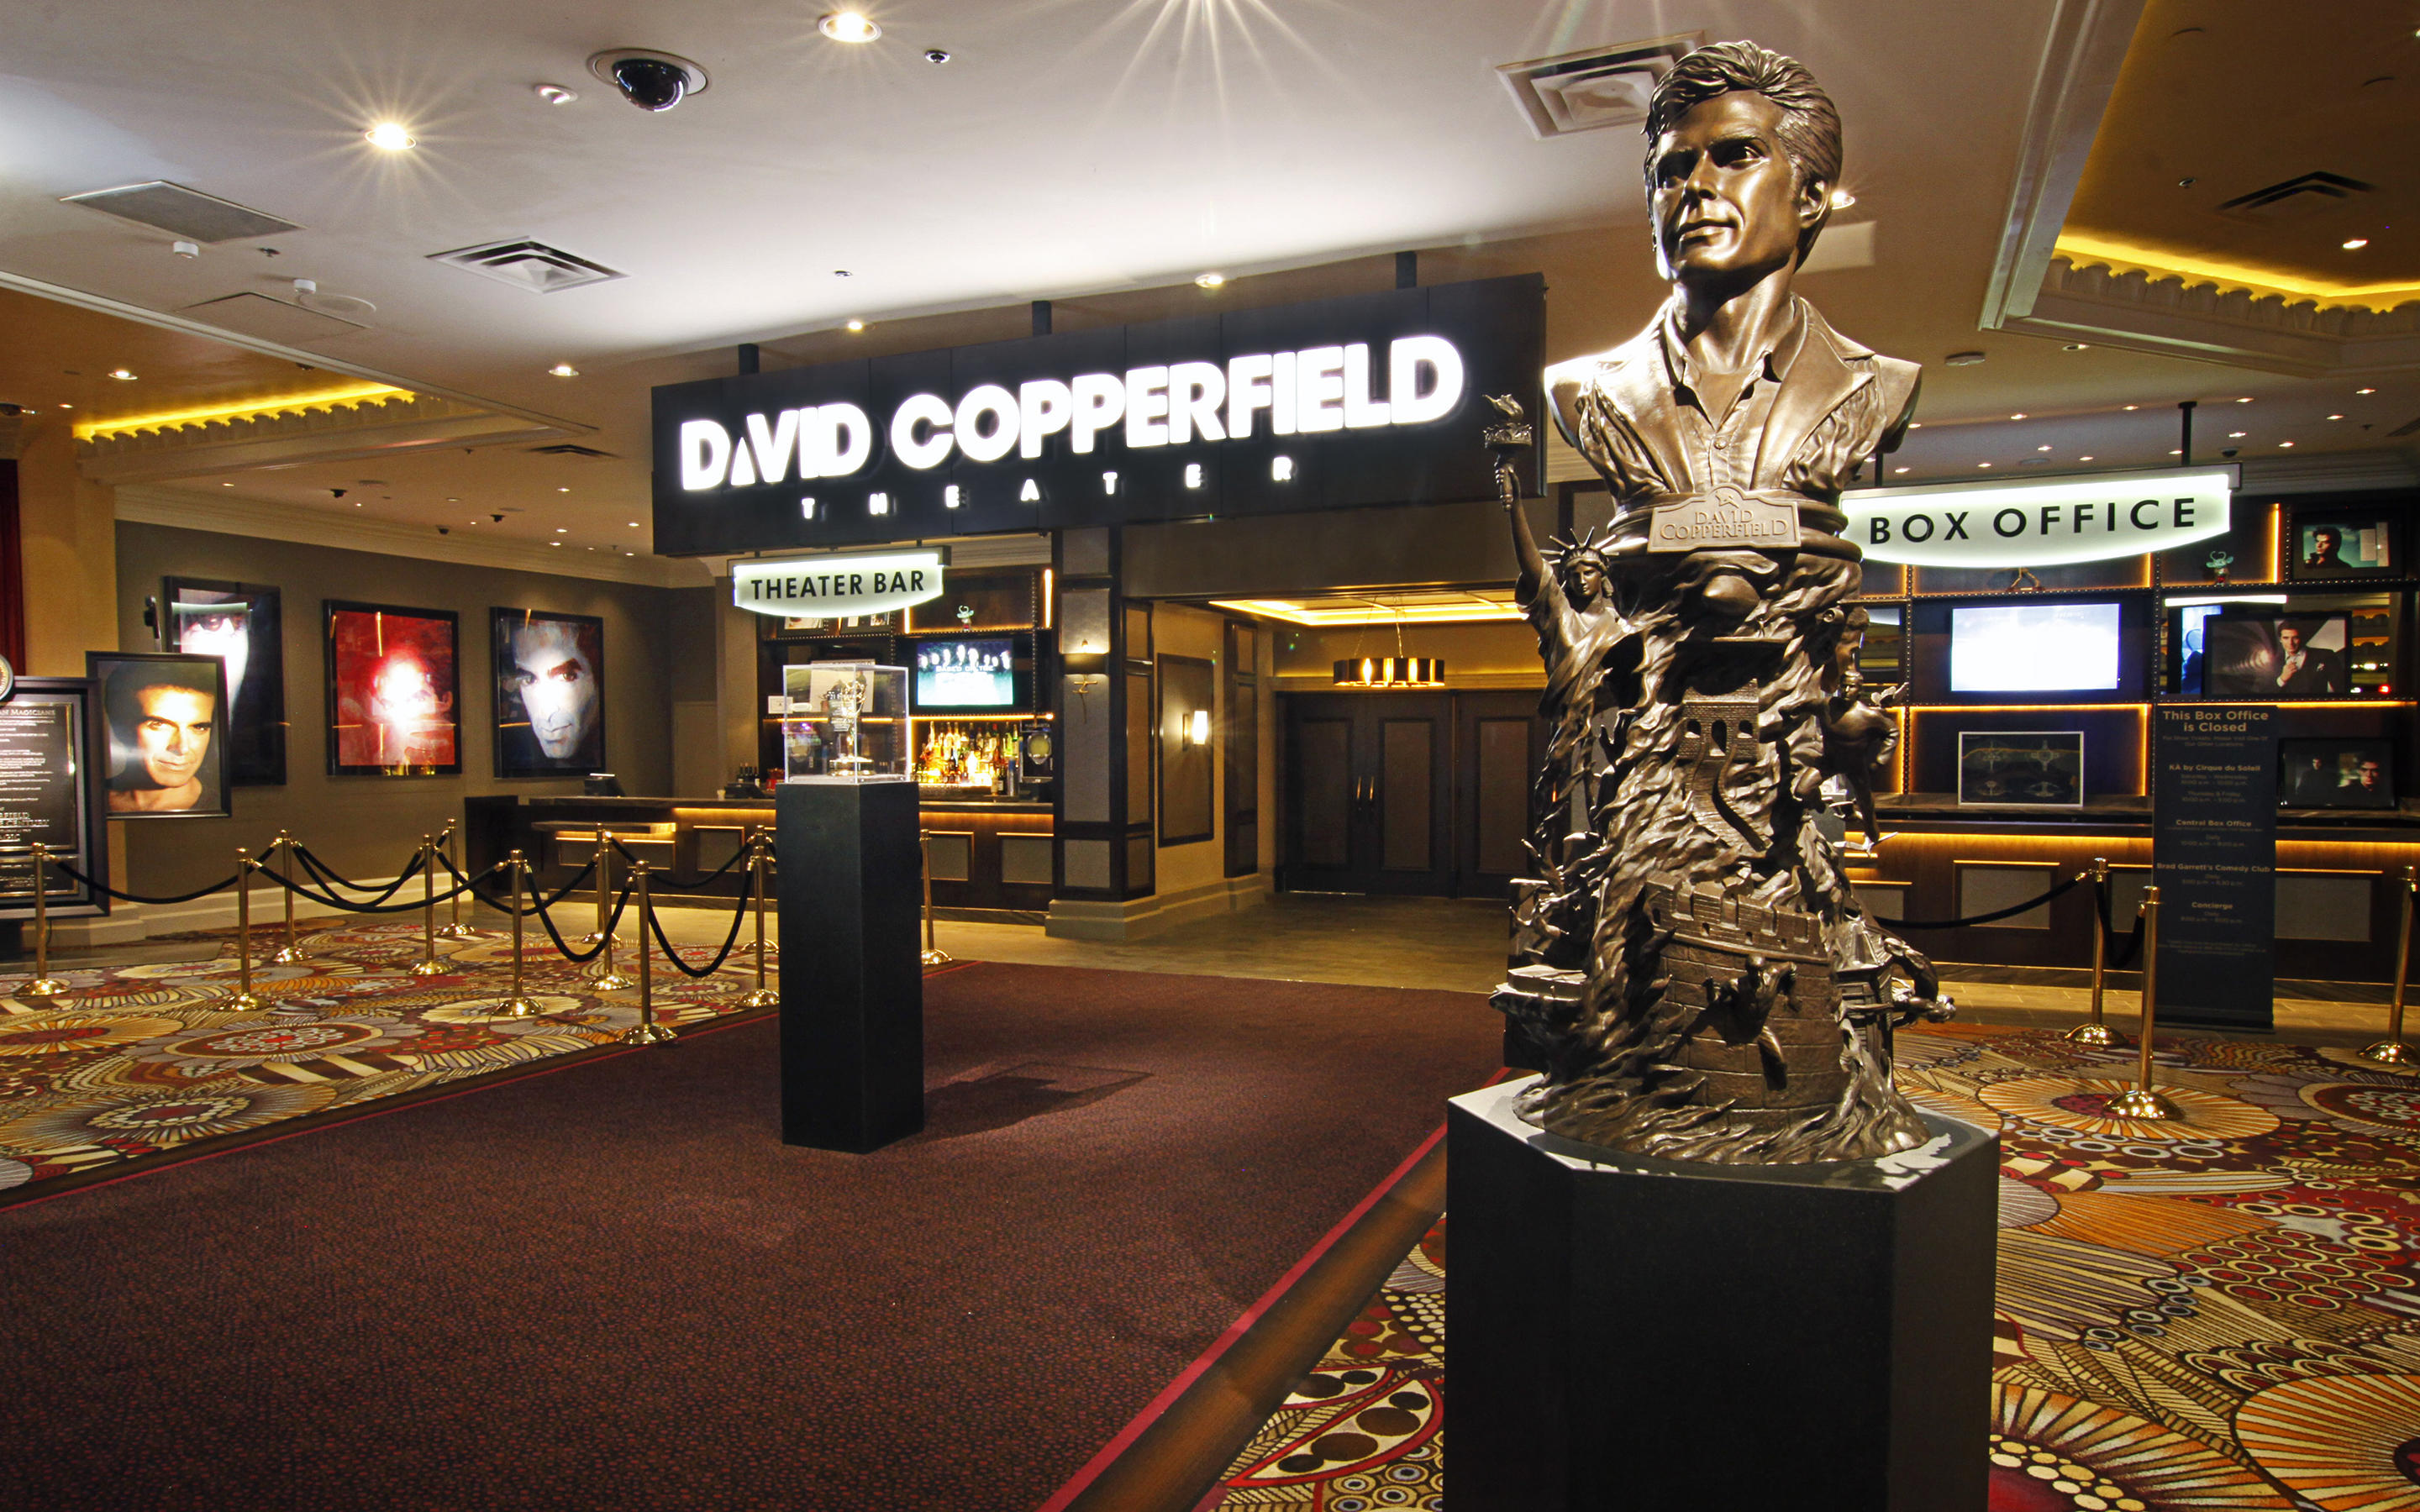 David Copperfield Theater Exterior